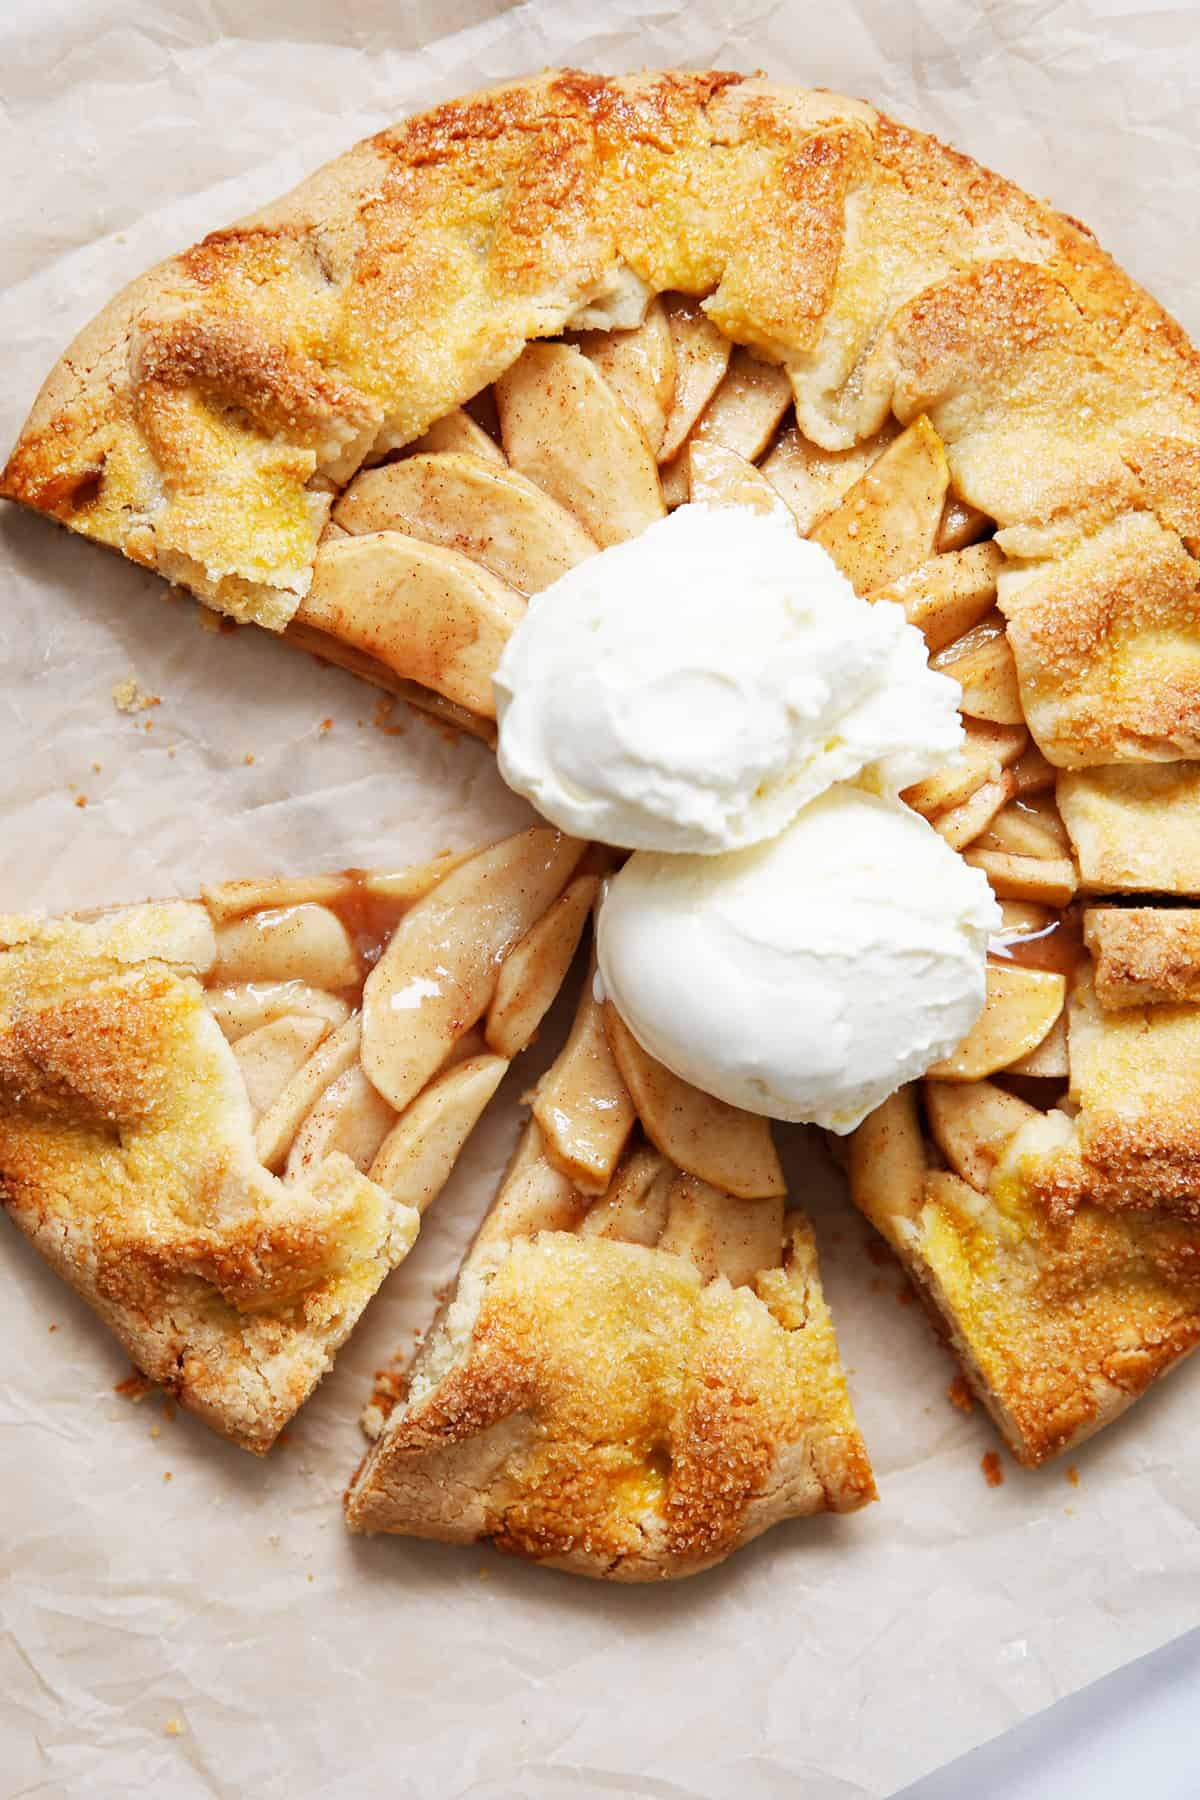 A gluten free apple galette with ice cream on it